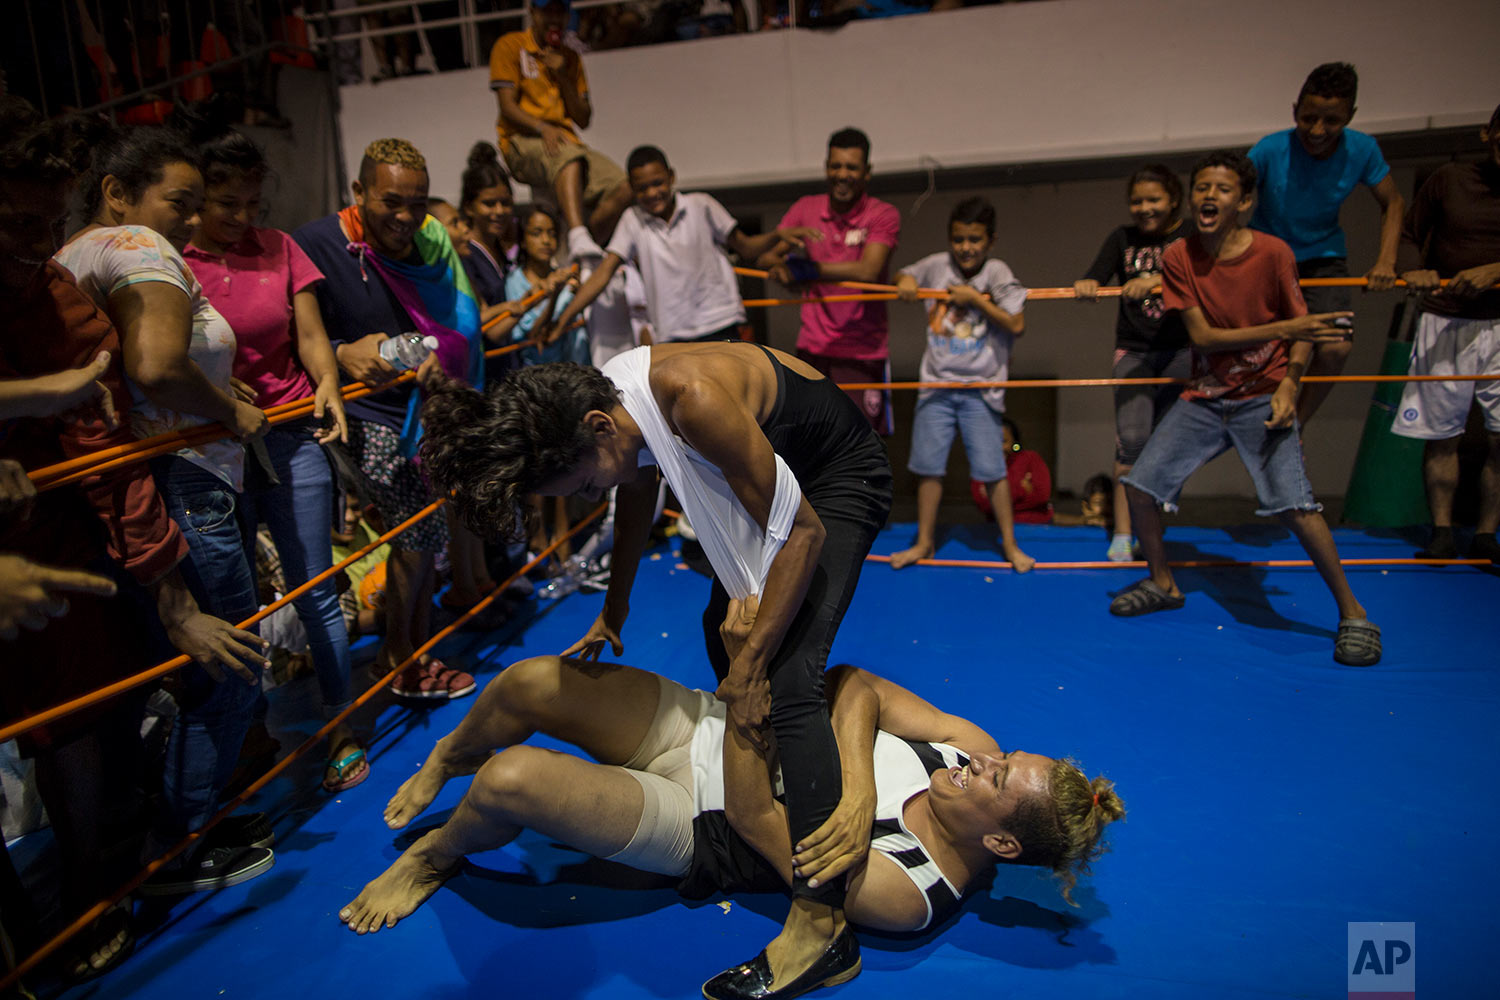 In this Nov. 4, 2018 photo, Nicaraguan transgender Sinai Cortez wrestles with her colleague Estrellita, of Honduras, because they were pressured by the men to get in the ring and battle it out, at a temporary shelter in Cordoba, Mexico. (AP Photo/Rodrigo Abd)